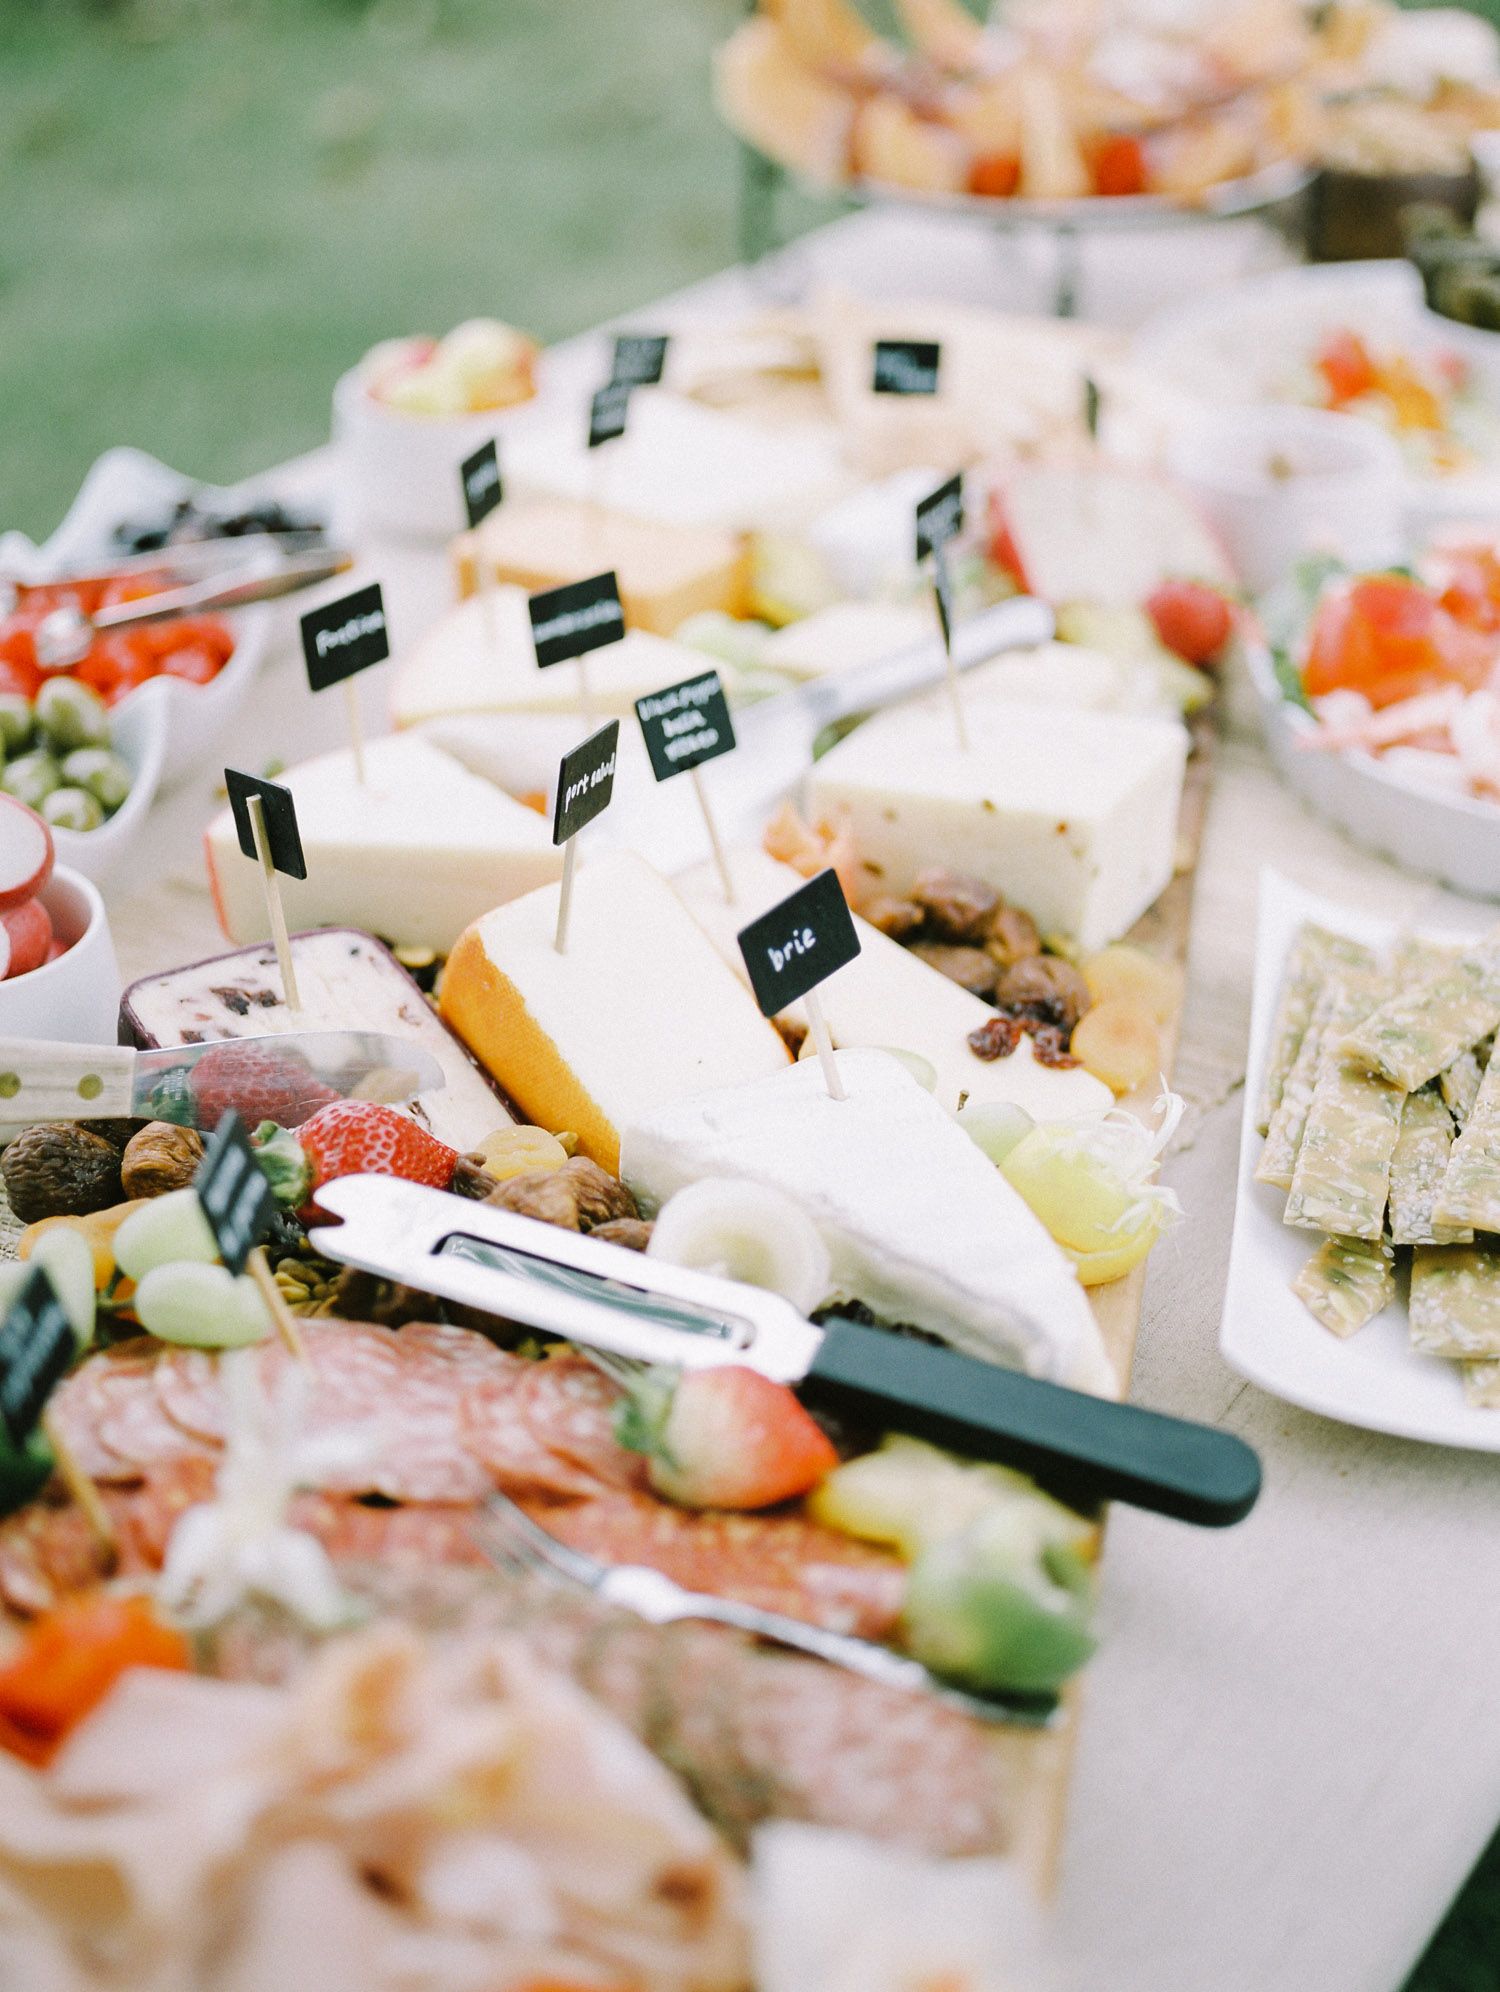 An array of brie and other delicious cheeses form a beautiful charcuterie table with fruit and crackers at an intimate Lake Michigan wedding celebration